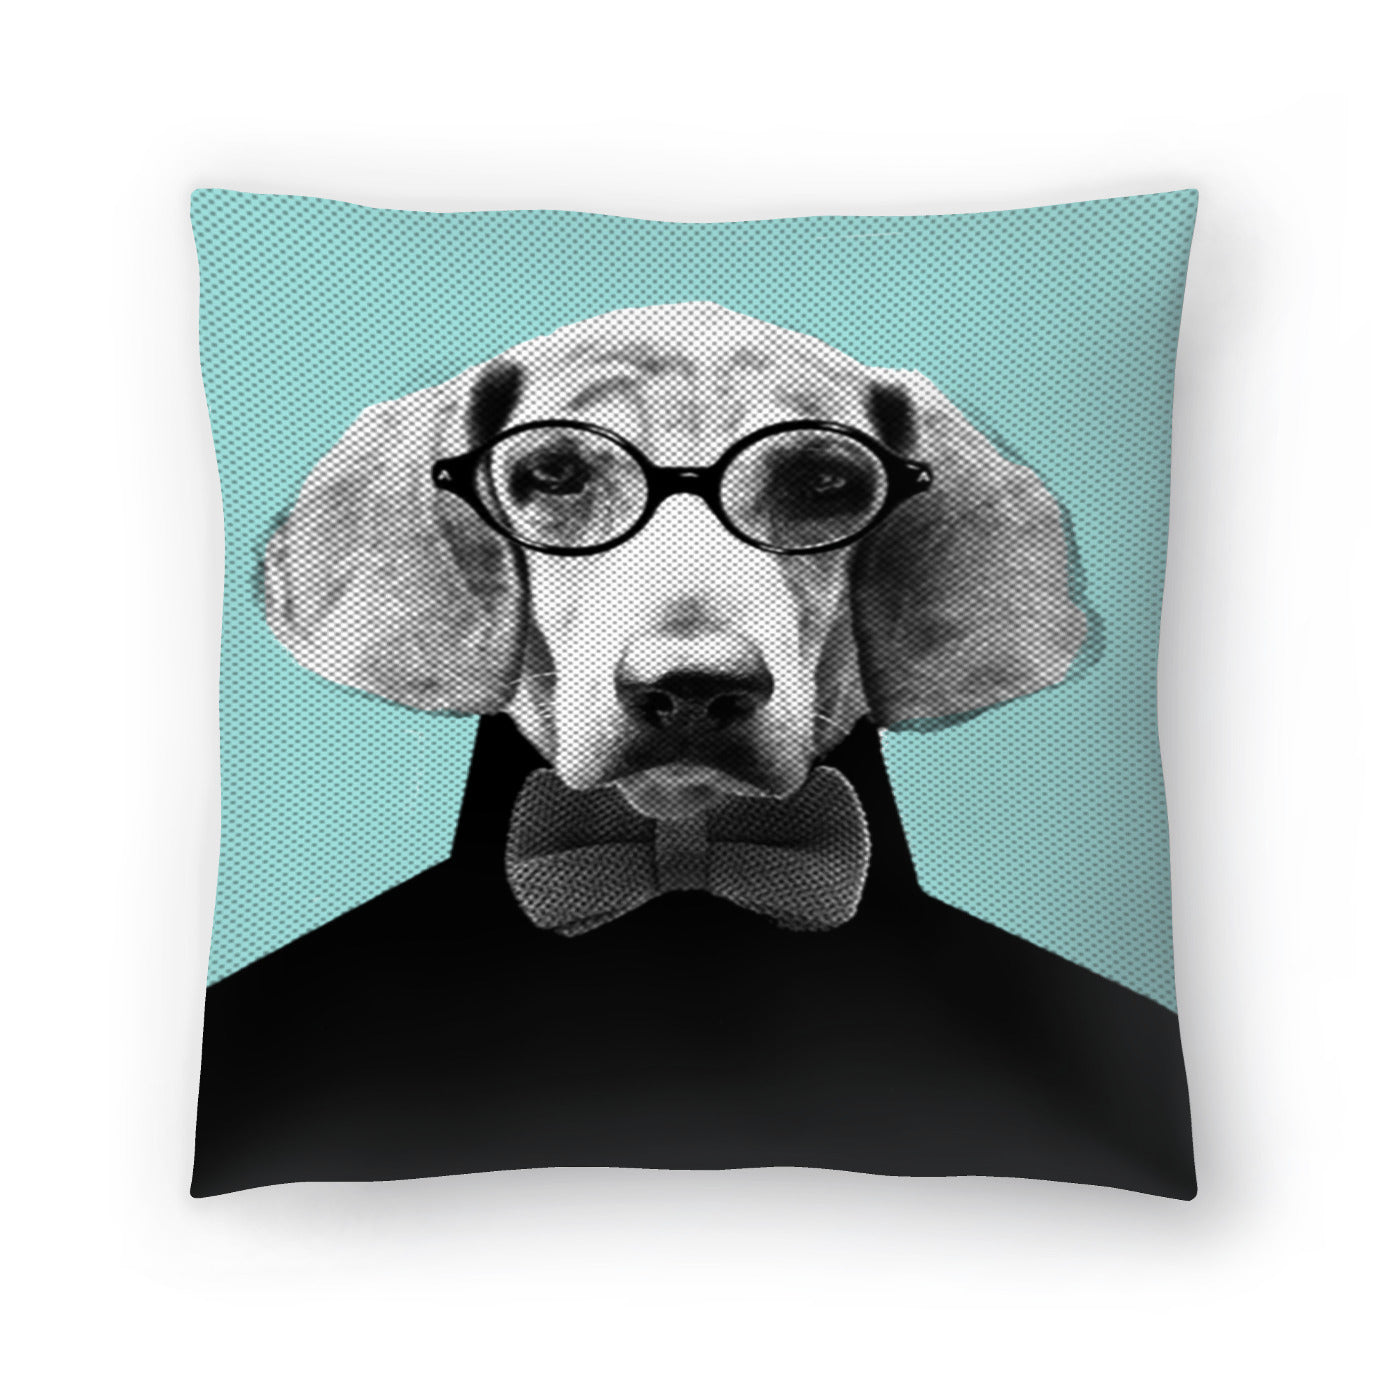 Mr Italian Bloodhound The Hipster by Emanuela Carratoni Decorative Pillow - Decorative Pillow - Americanflat